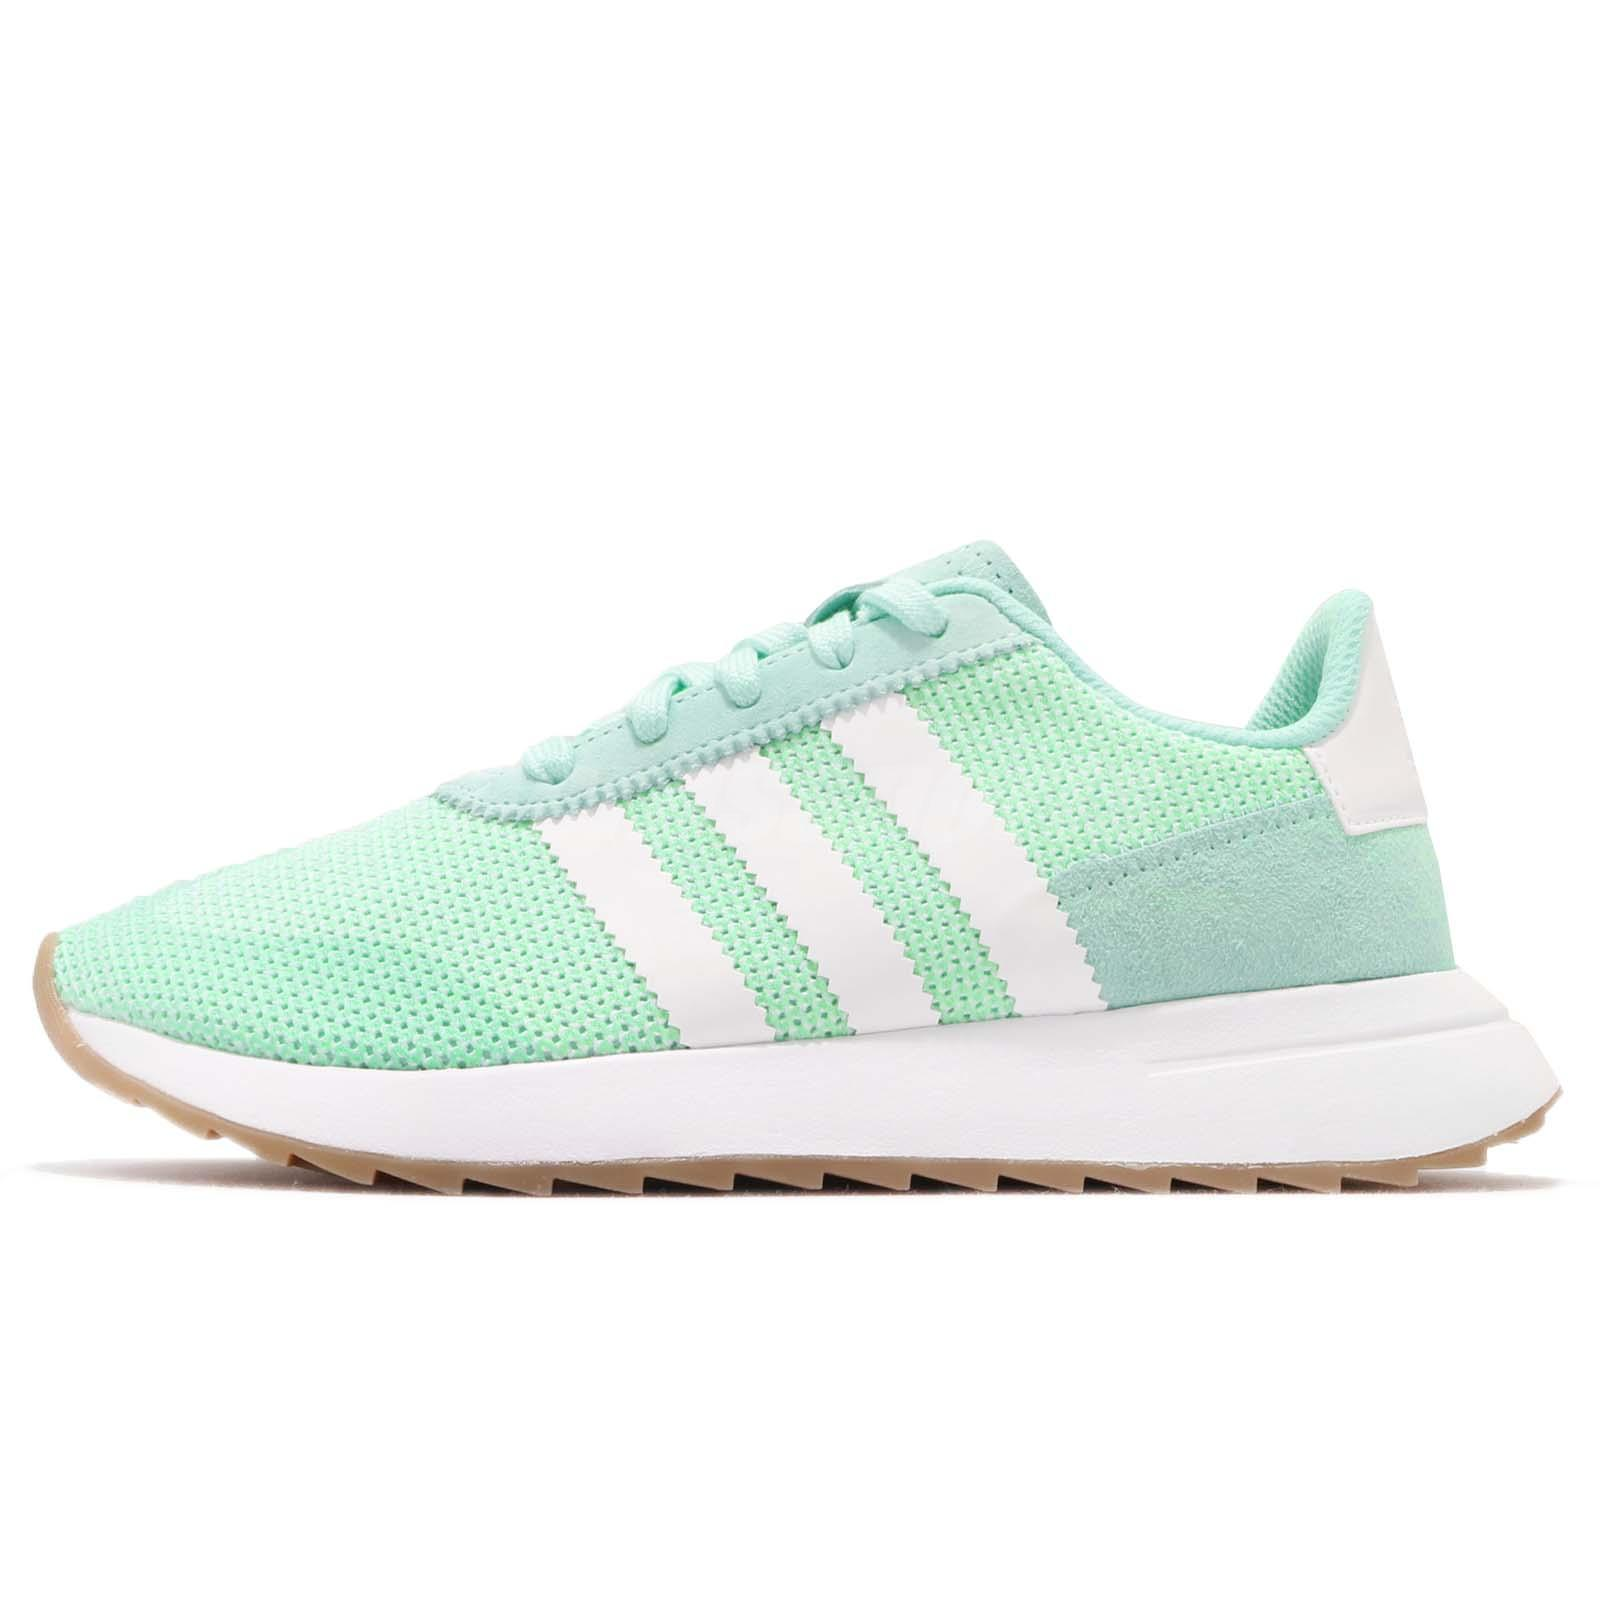 25b793b1e3a1 adidas Originals FLB Runner W Flashback Green White Women Running Shoes  DB2122